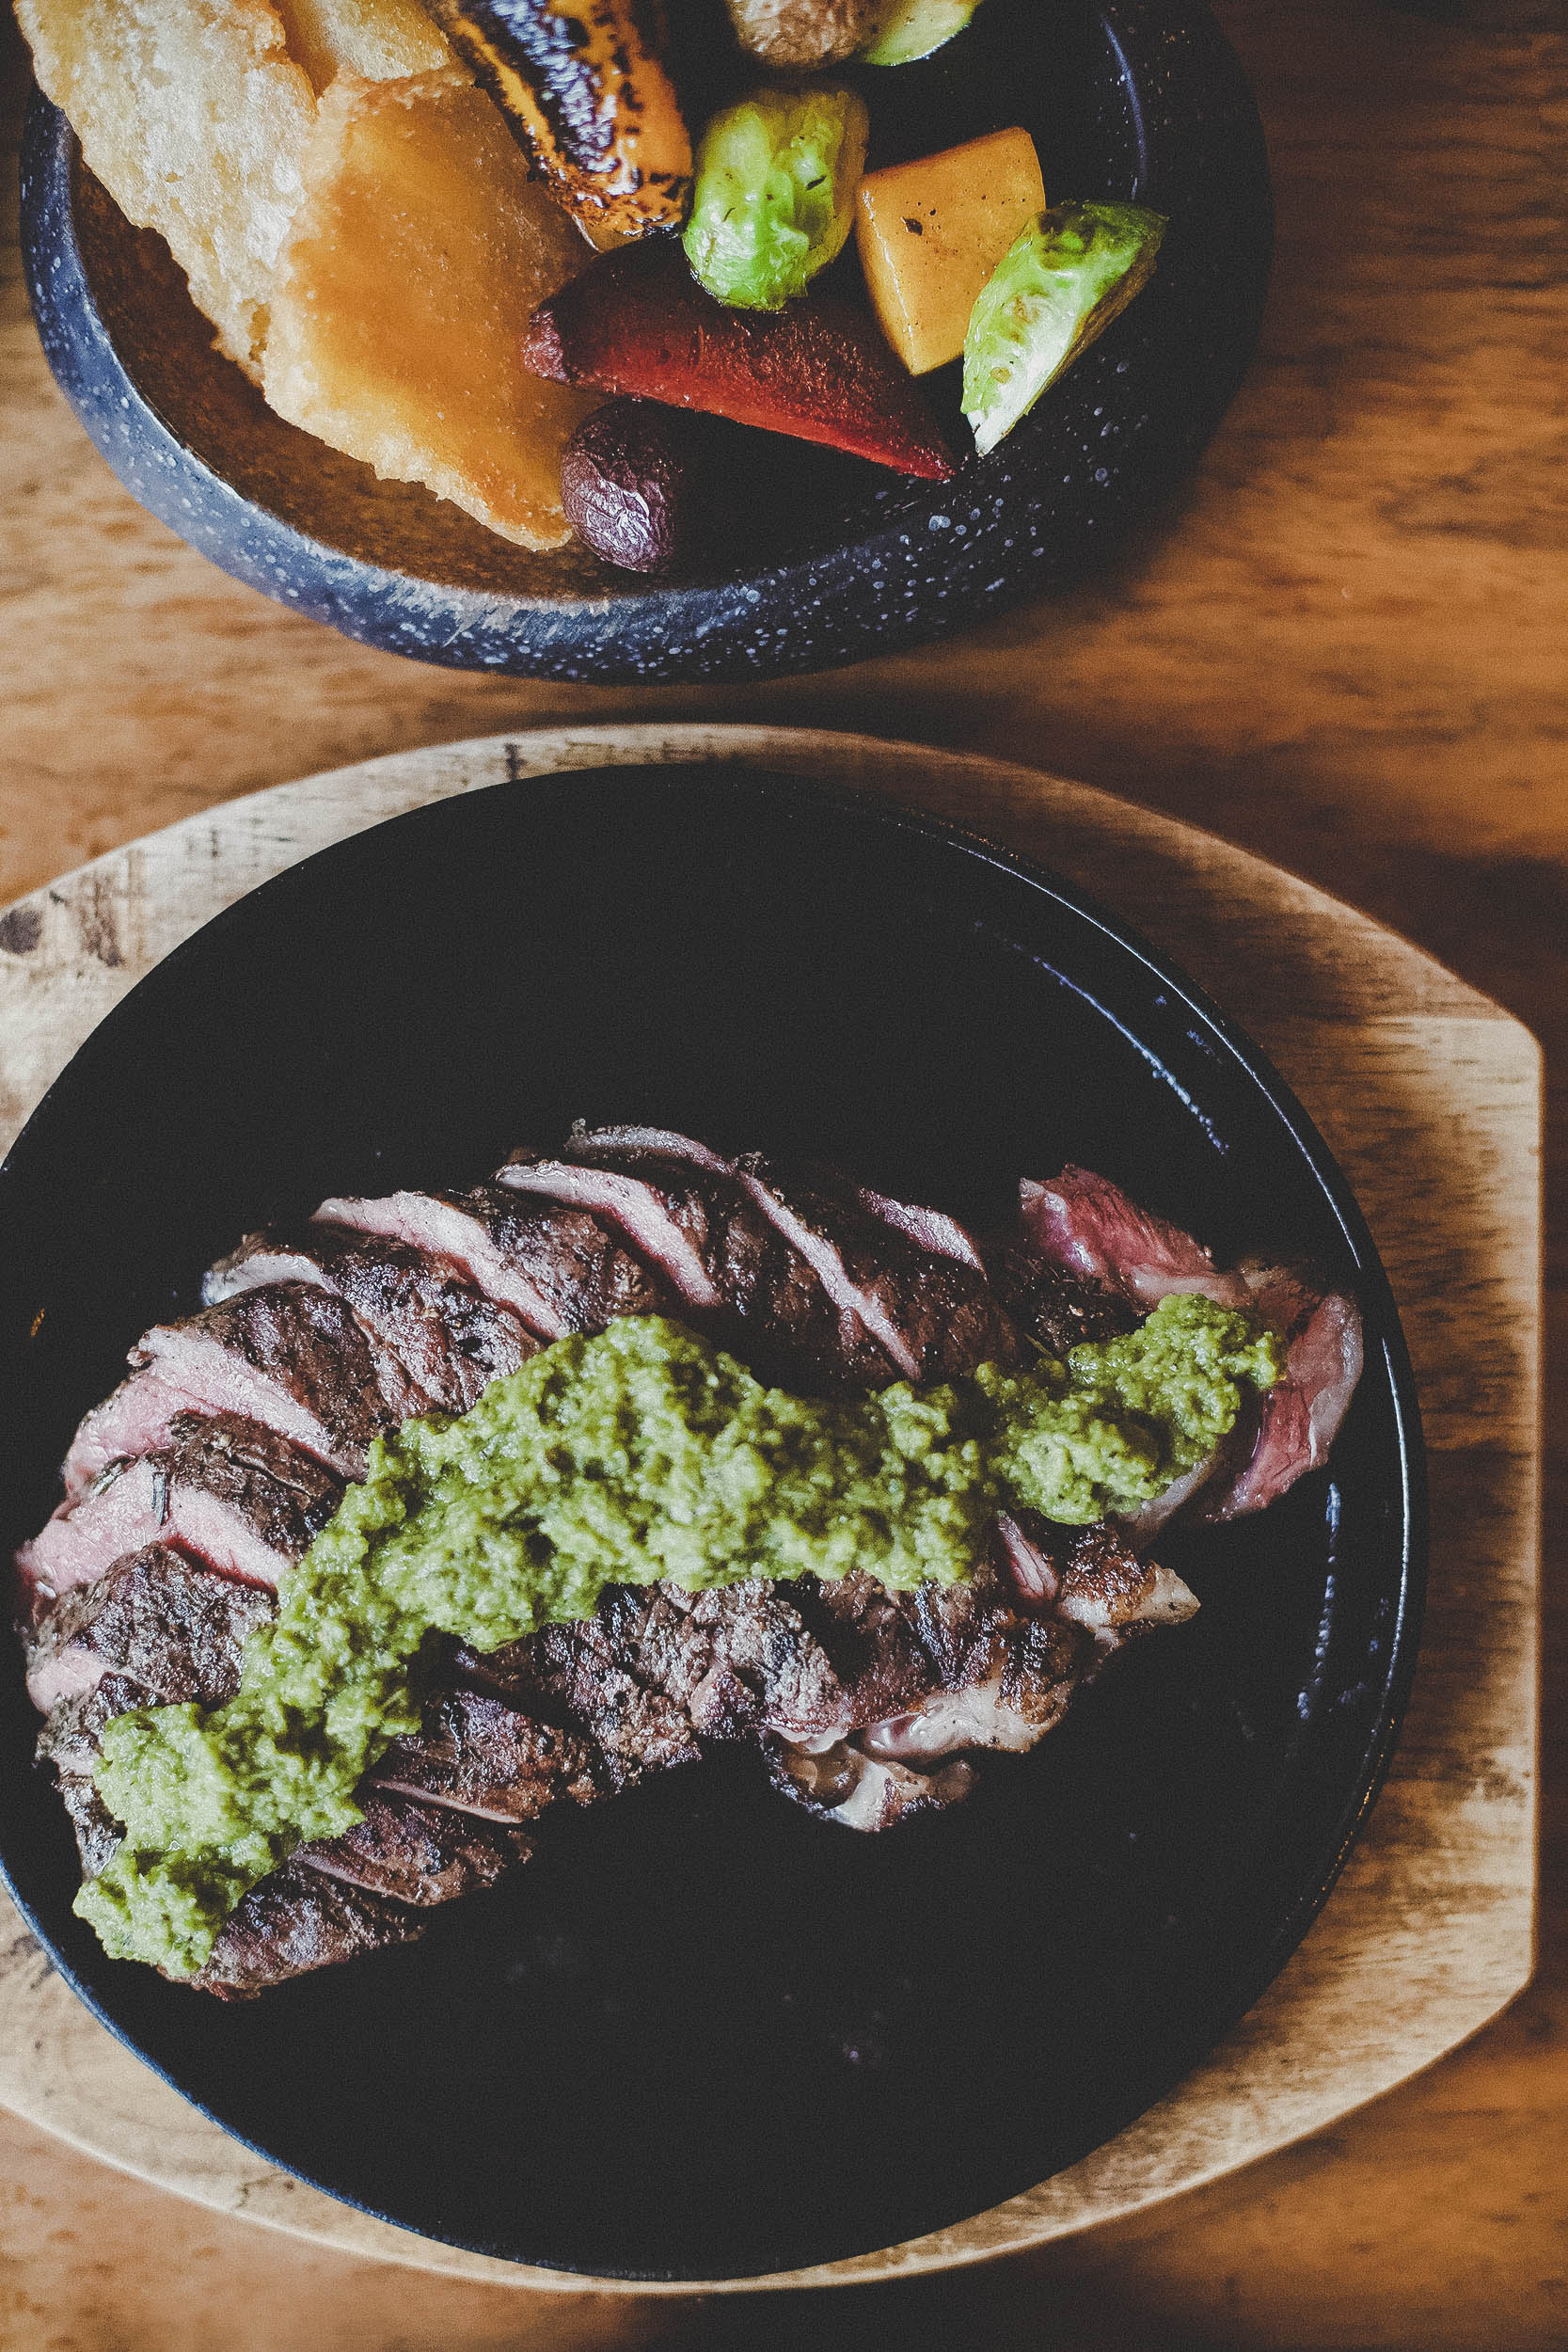 Beef Asado (Argentinian-style BBQ steak) and chimichurri.